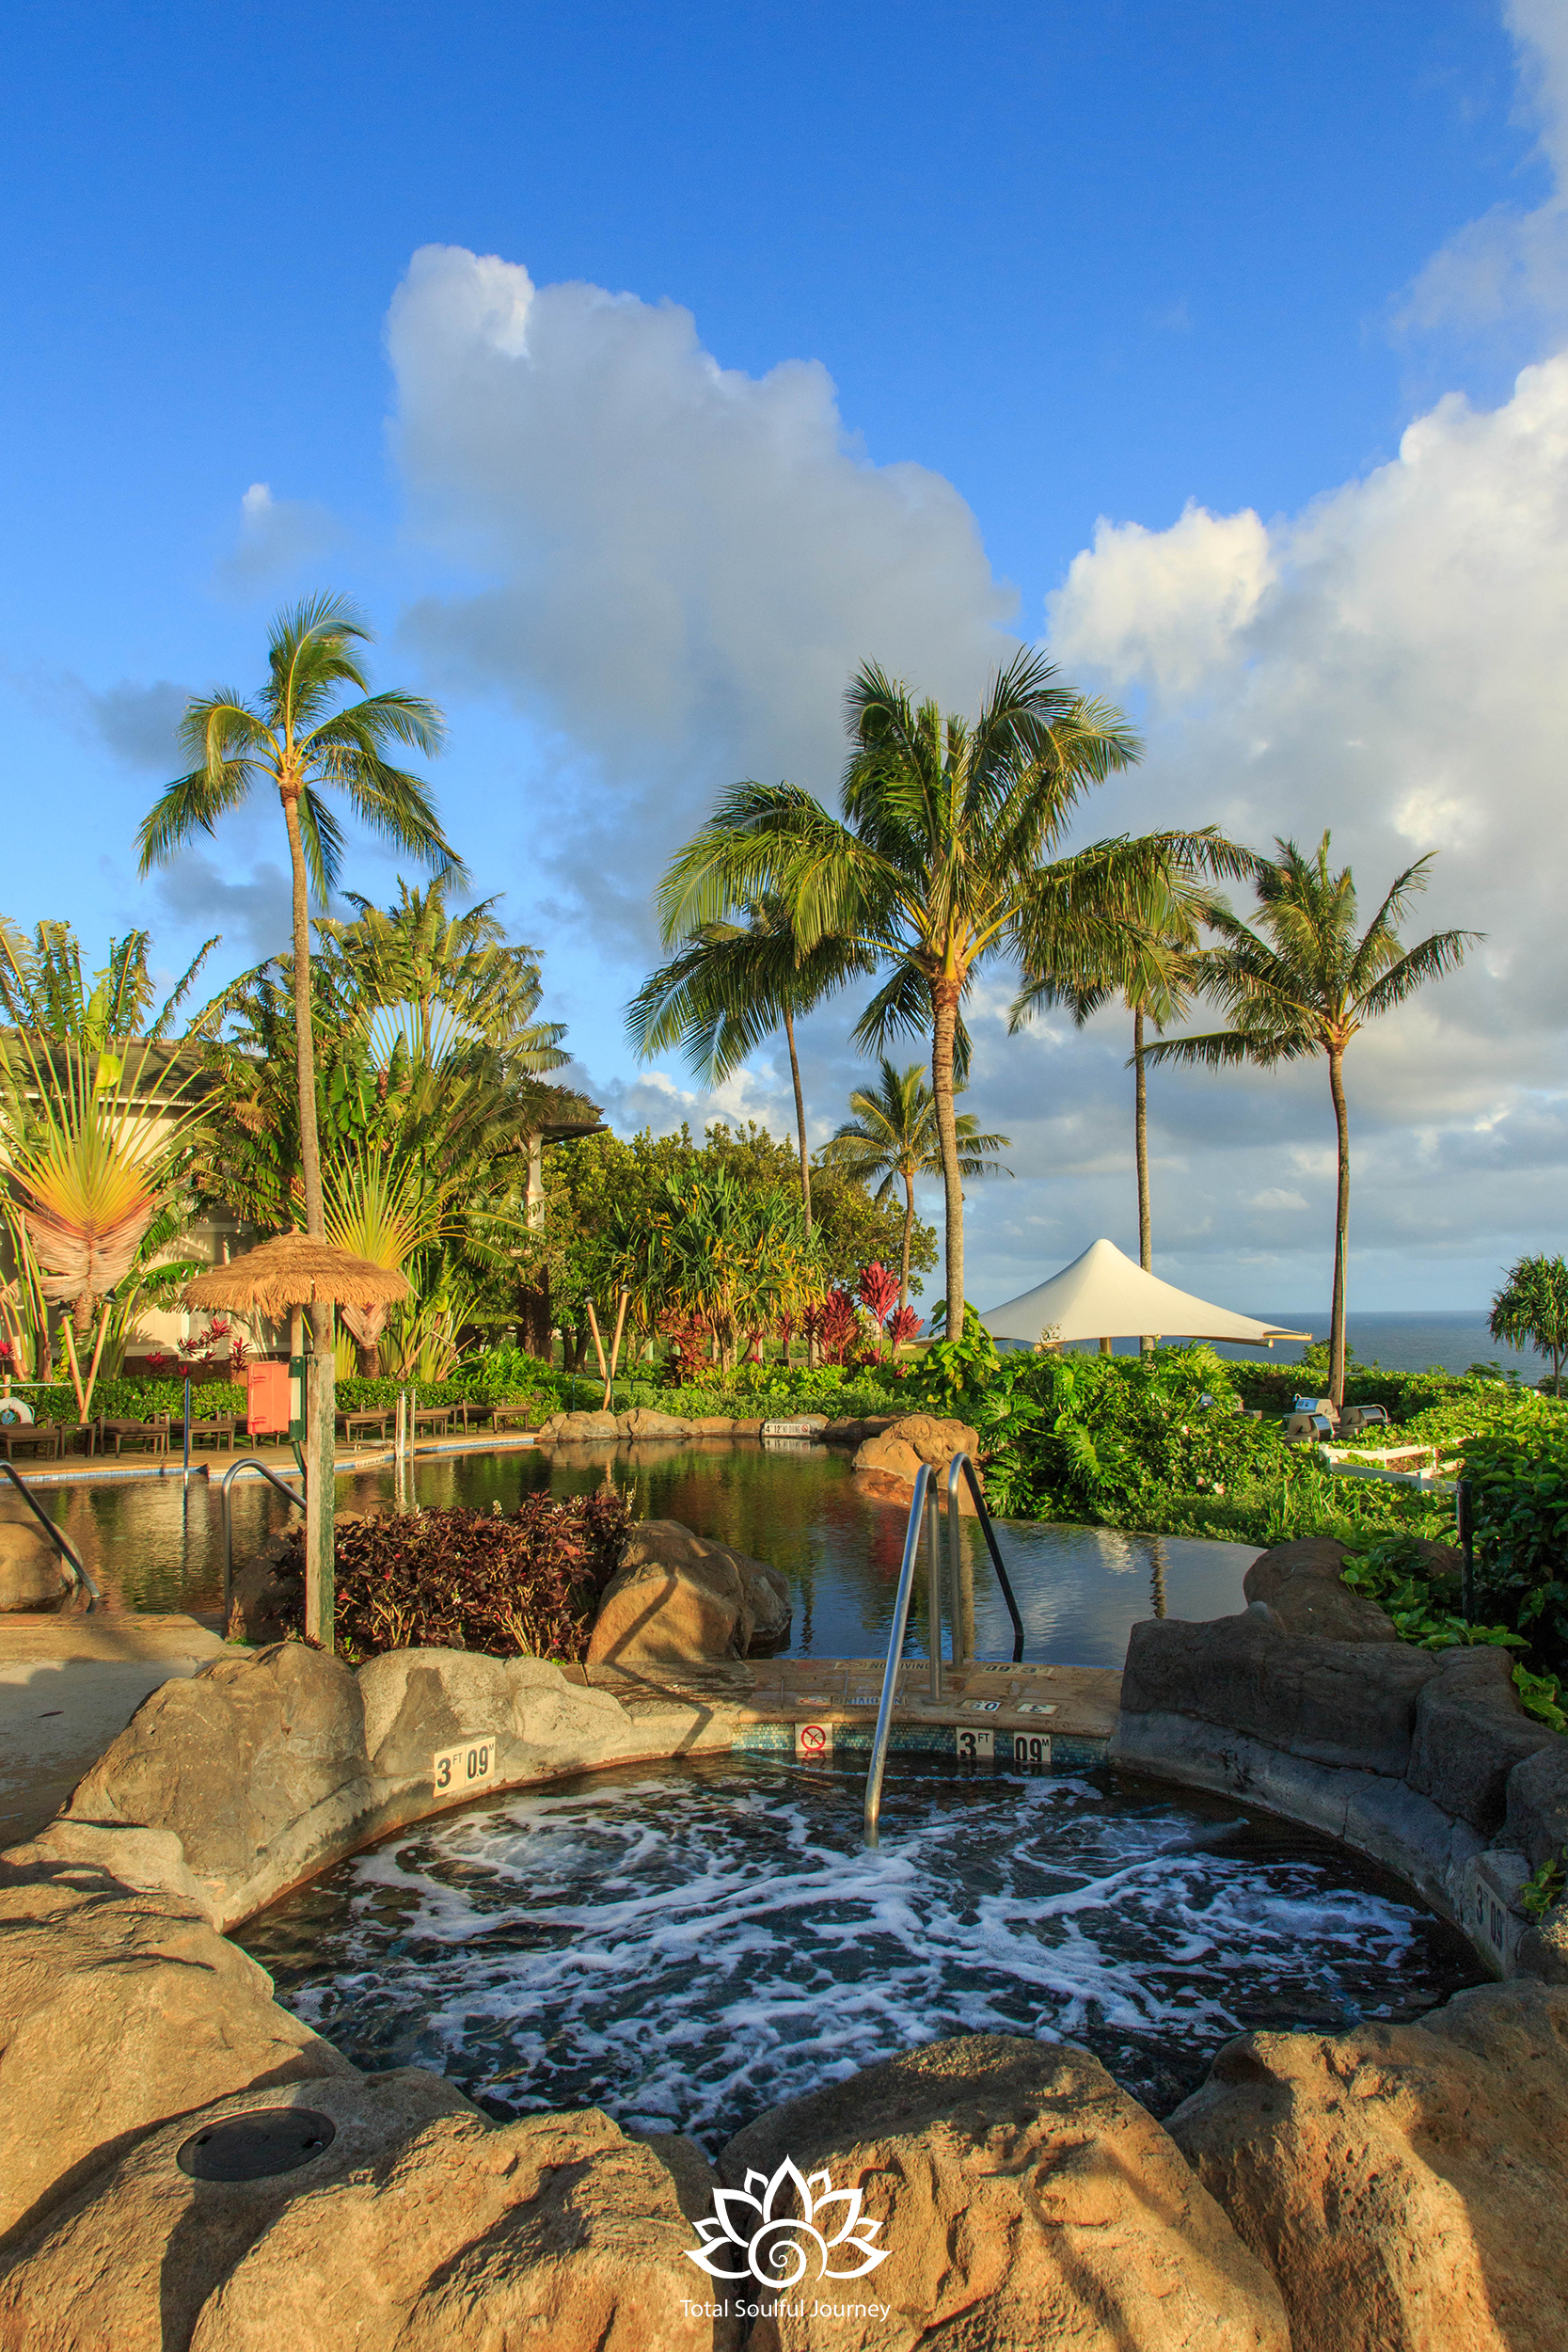 The Westin Princeville has three swimming pools and a kids pool. Photography by Paul Garrett